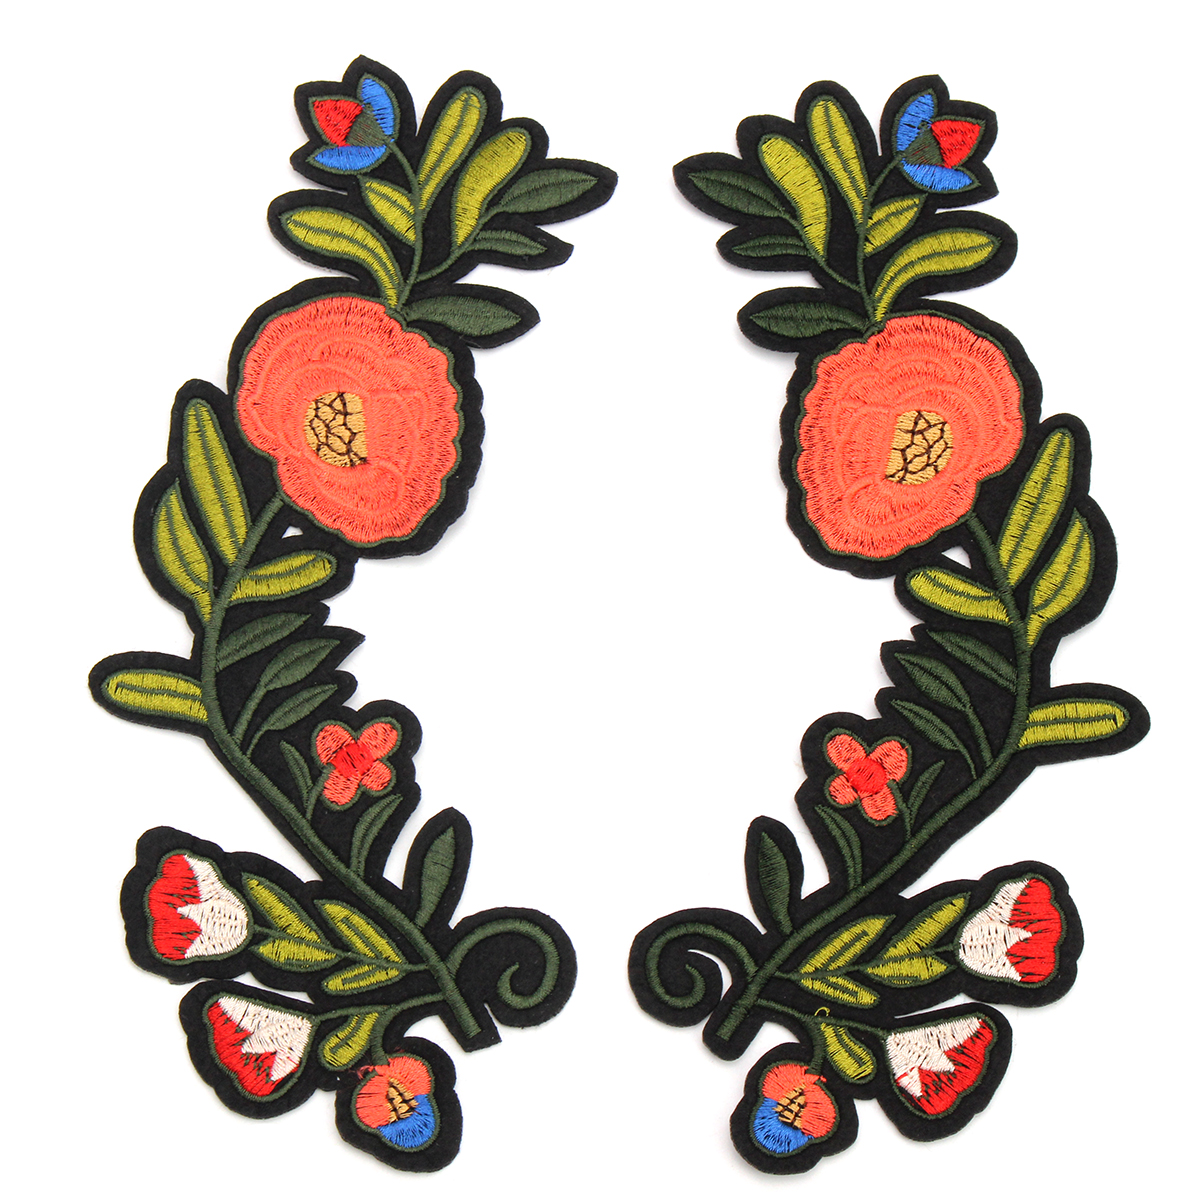 DIY 1 Pair Red Green Flower Patch Embroidered Apparel Accessories Floral Patches Sew on Applique